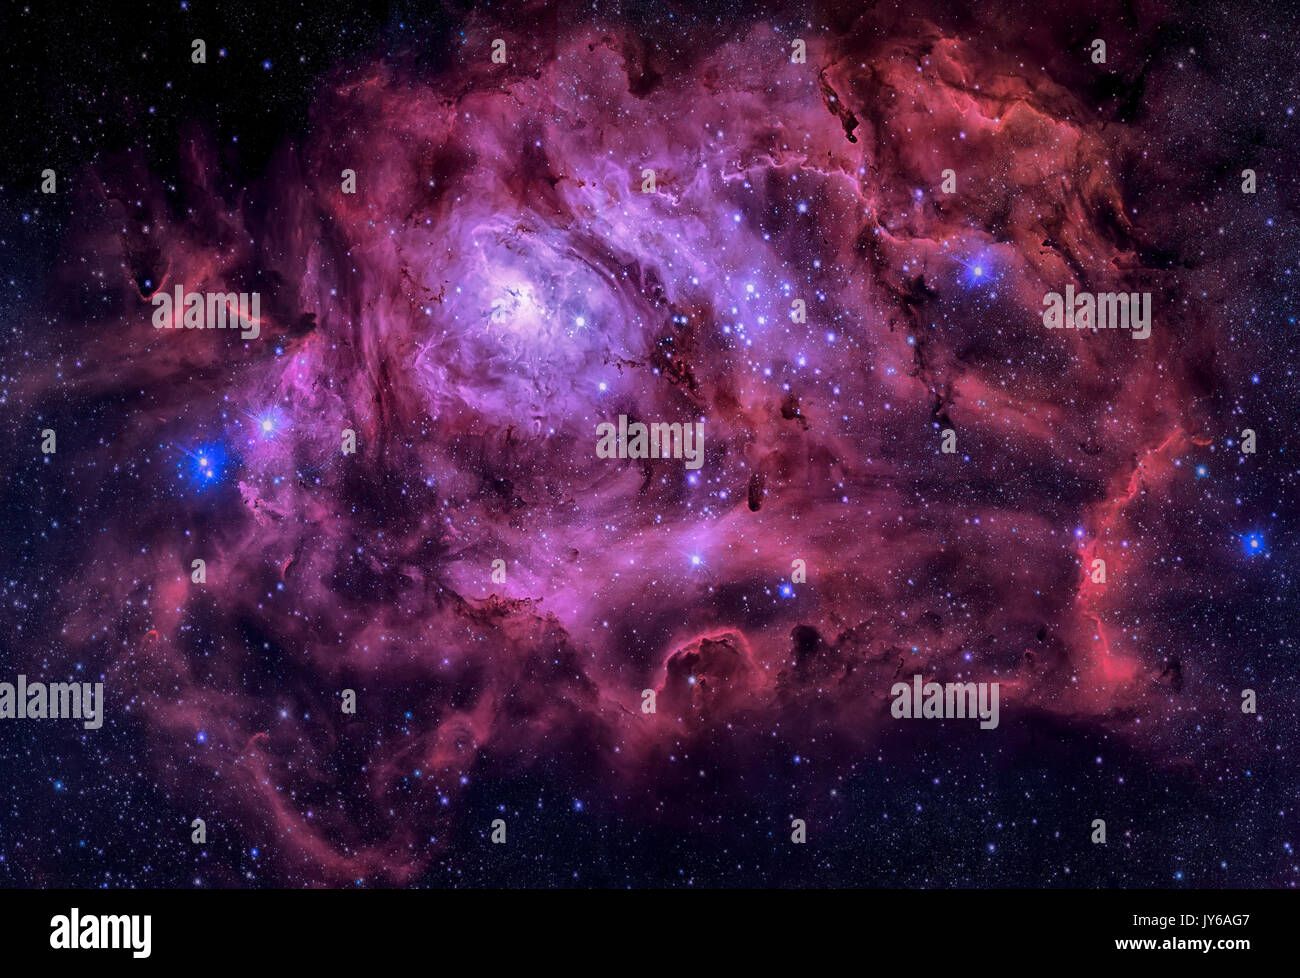 Lagoon Nebula. This giant cloud of gas and dust is creating intensely bright young stars, and is home to young stellar clusters. Retouched colored ima - Stock Image